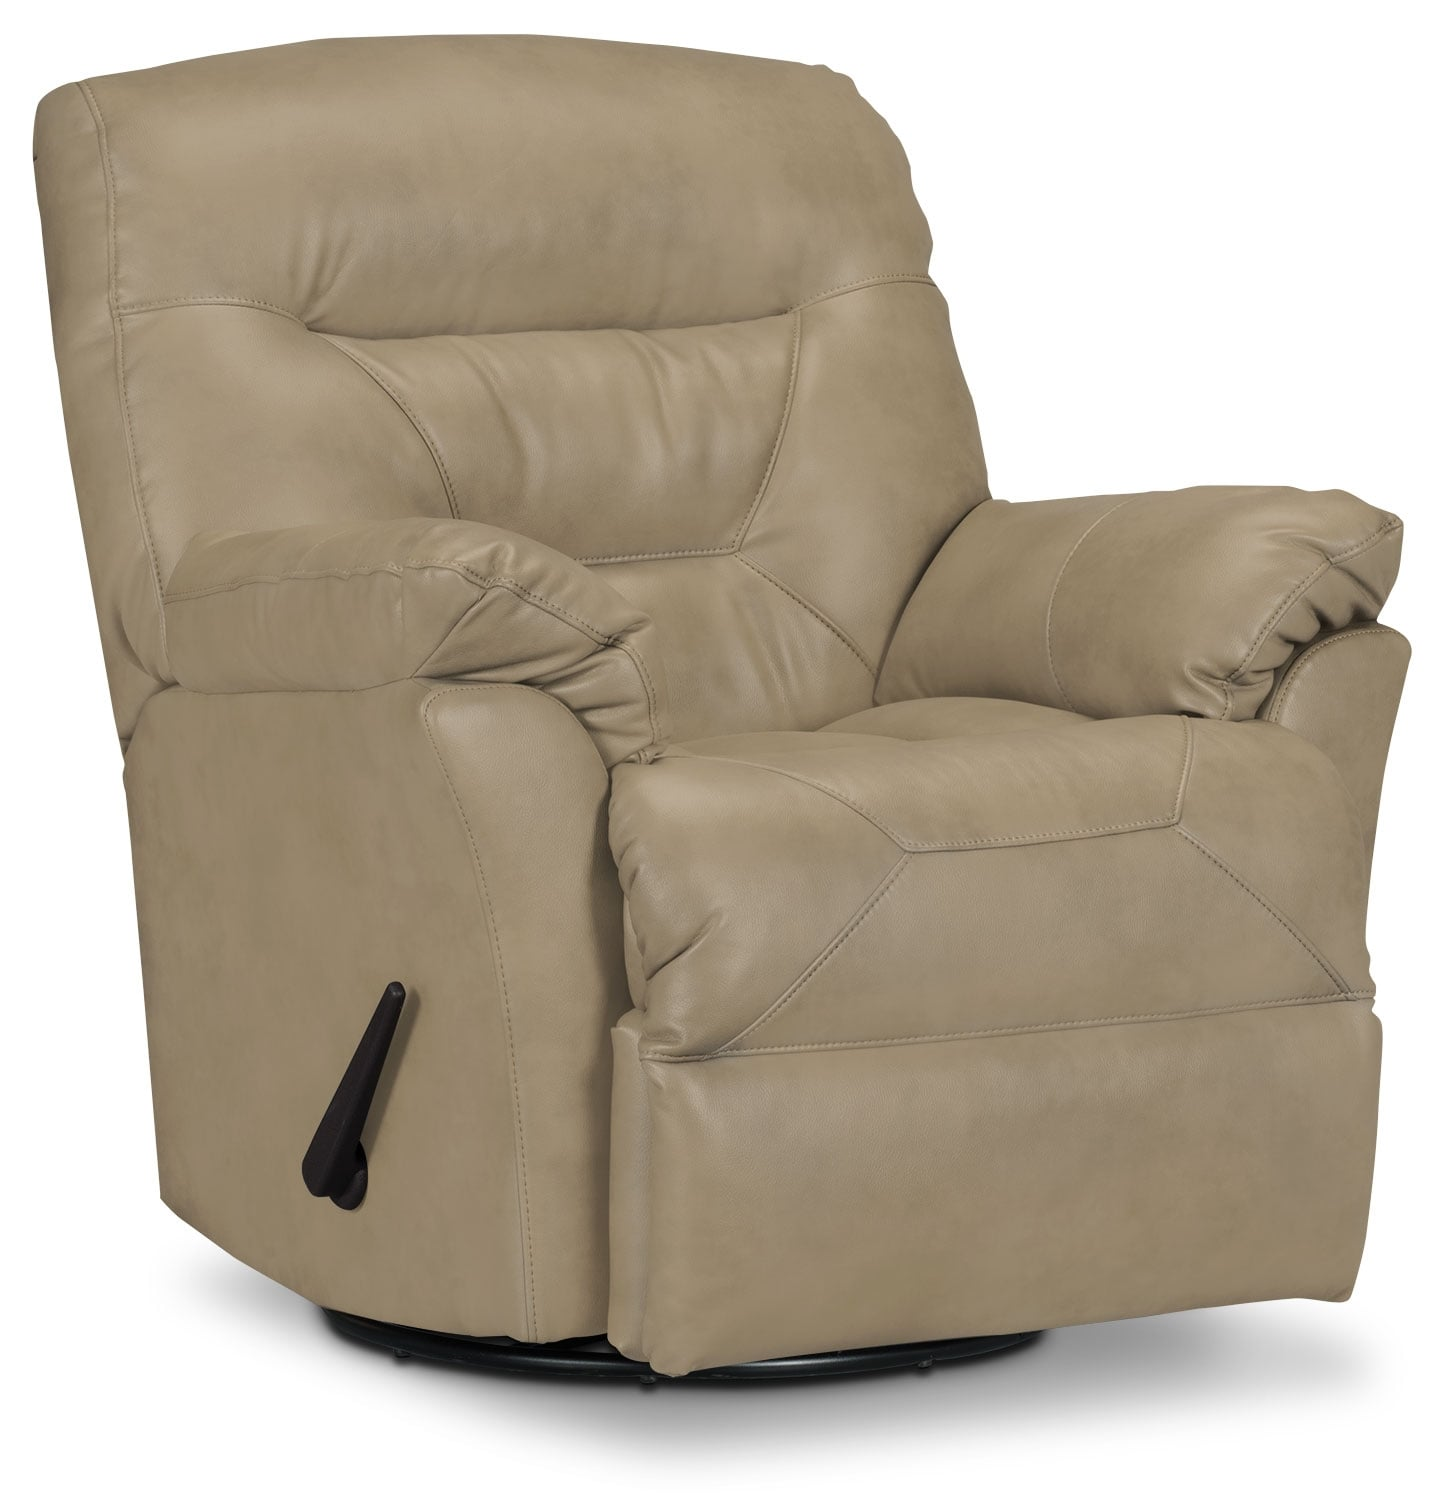 Designed2B Recliner 4579 Genuine Leather Swivel Glider Recliner - Putty